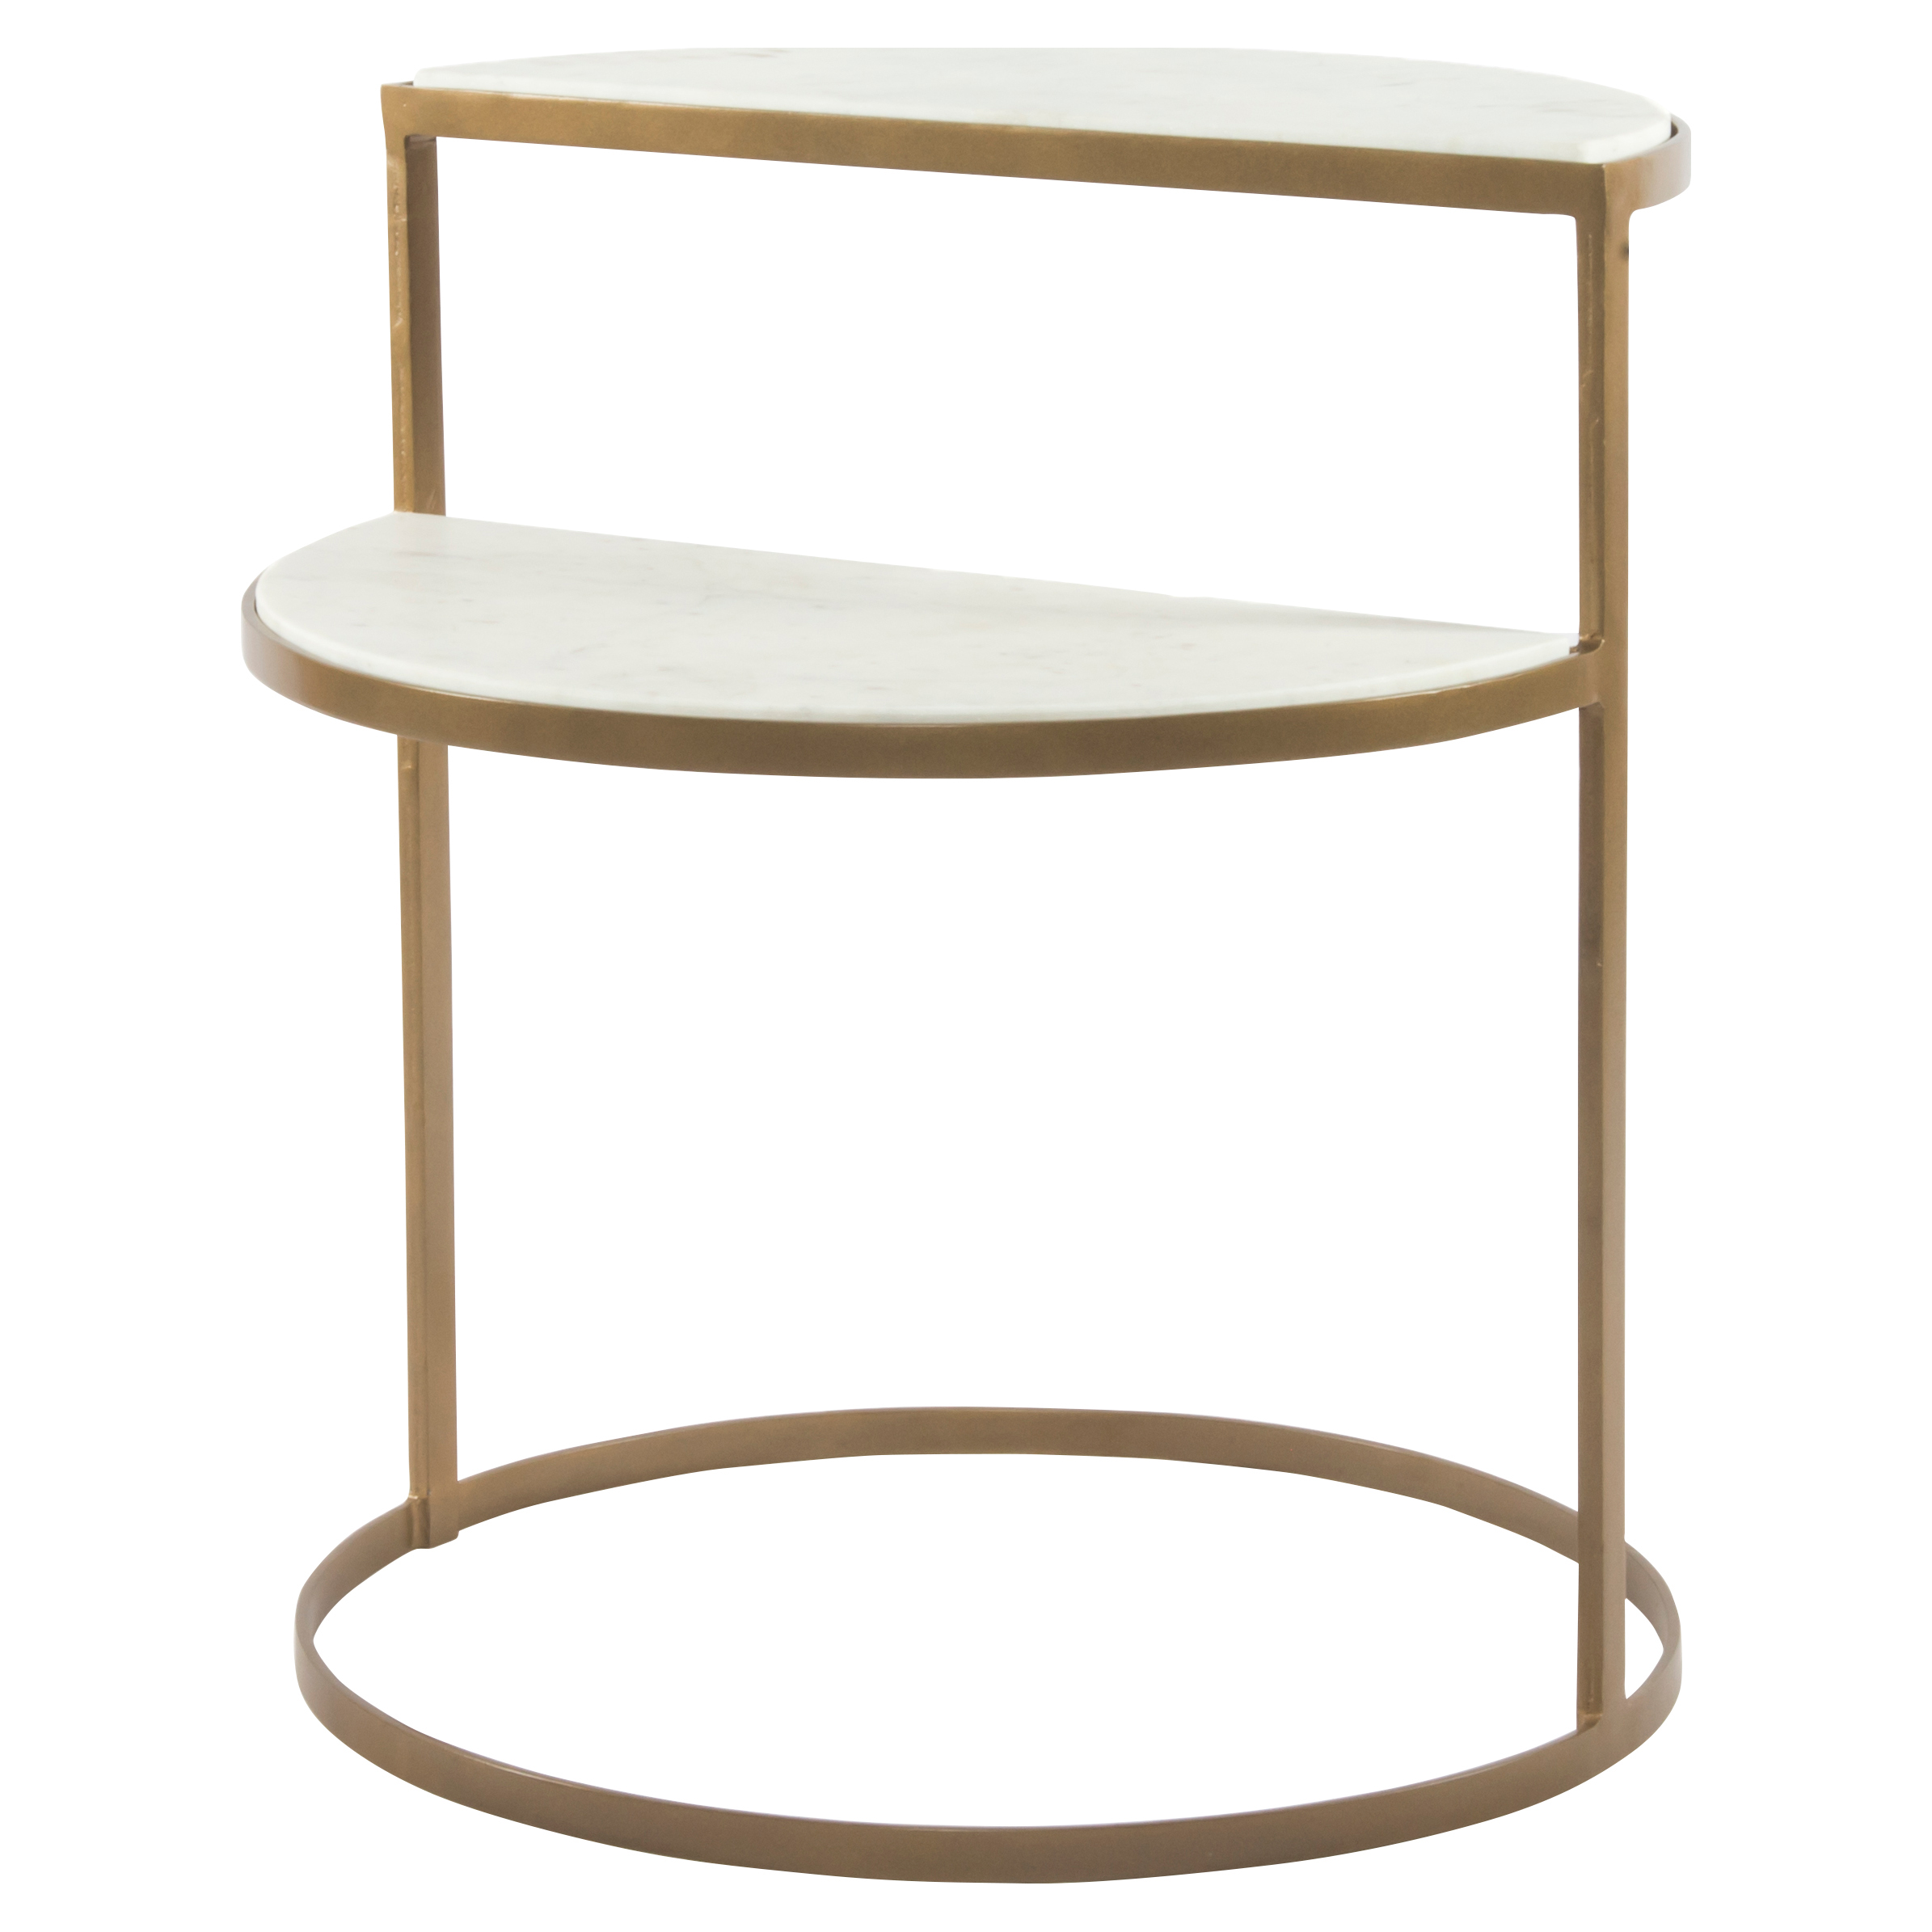 stunning white lacquer nightstand furniture. Marlowe Modern Regency White Marble Brass 2 Tier Circular Nightstand Stunning White Lacquer Nightstand Furniture L